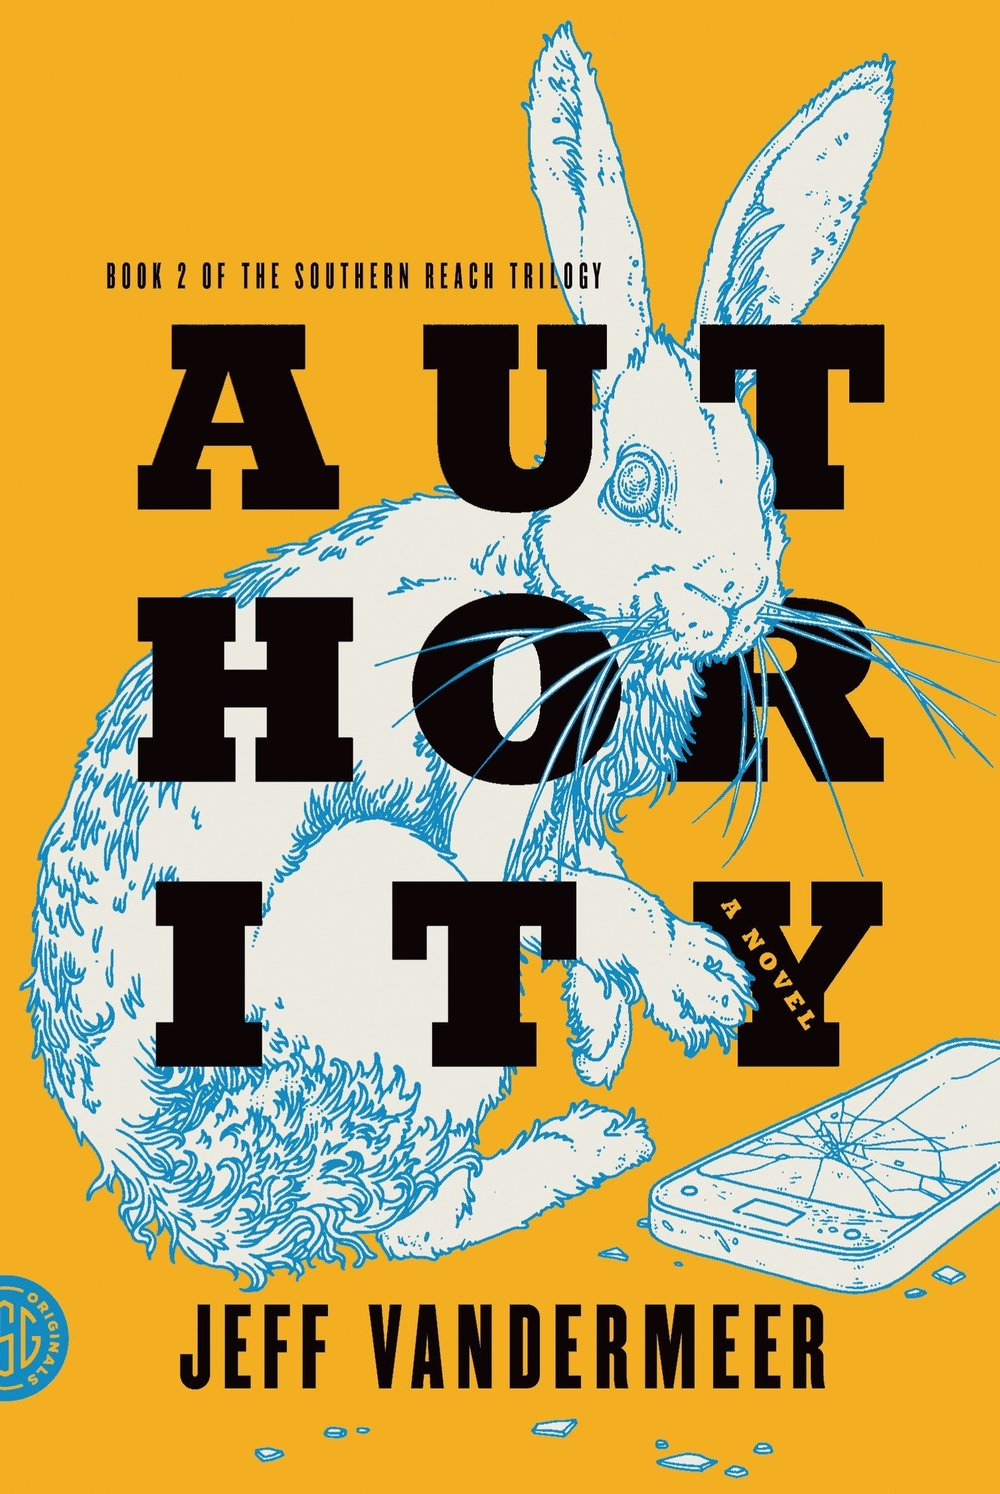 auhority jeff vandermeer